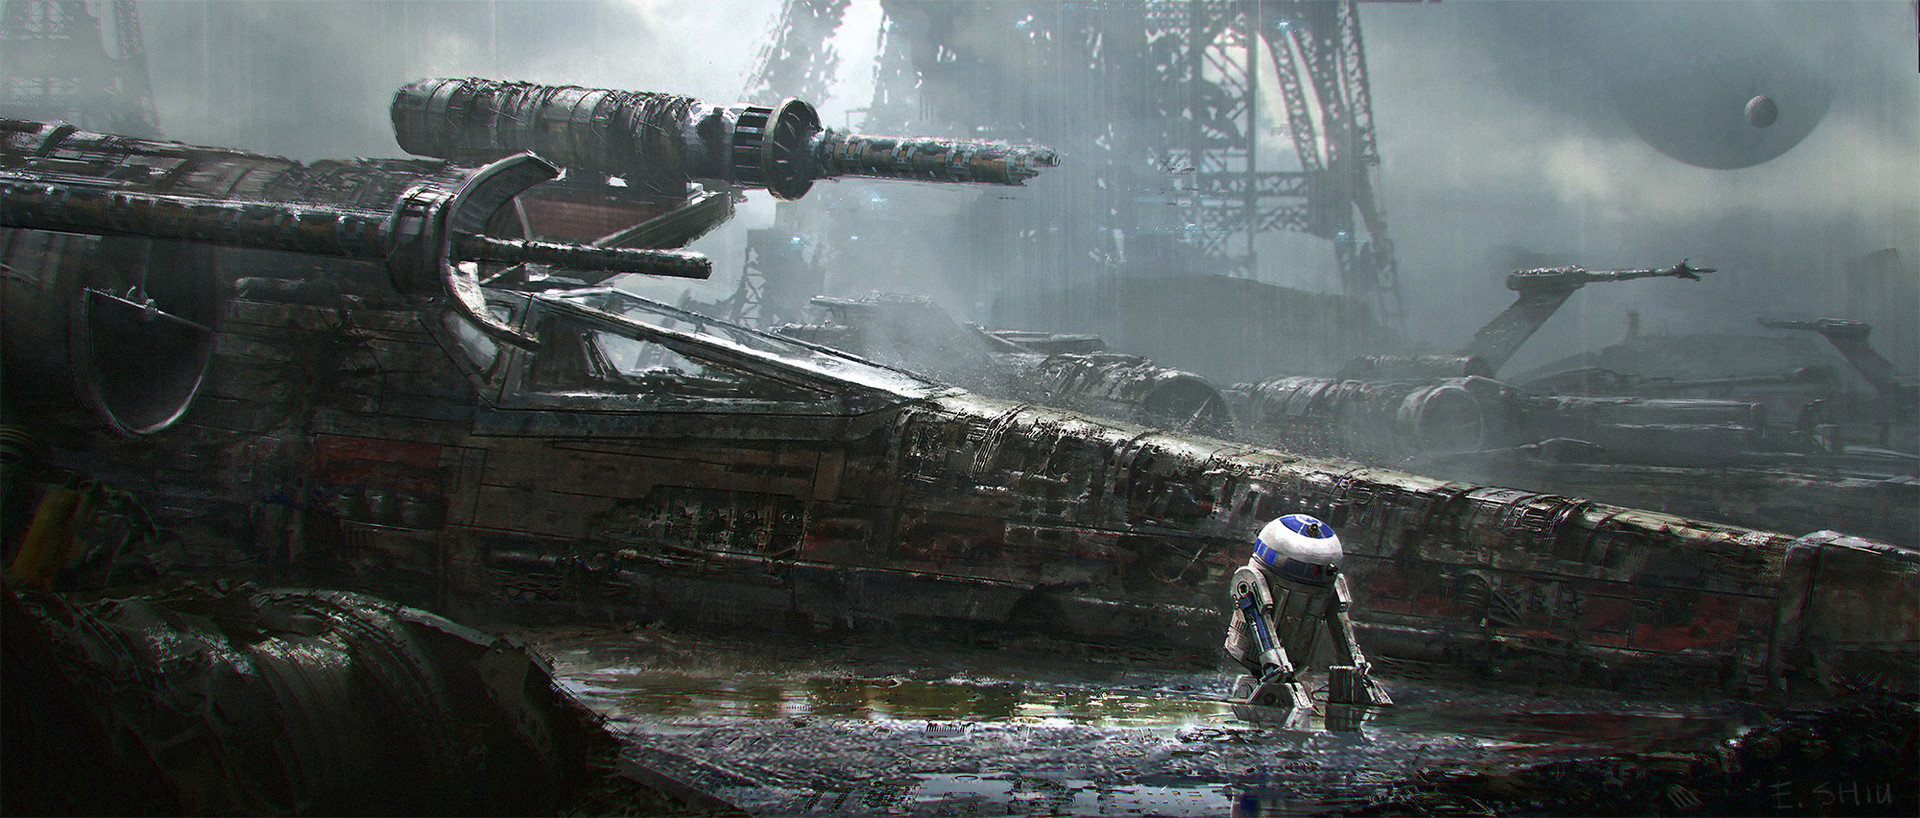 Star Wars Concept Art and Illustrations II